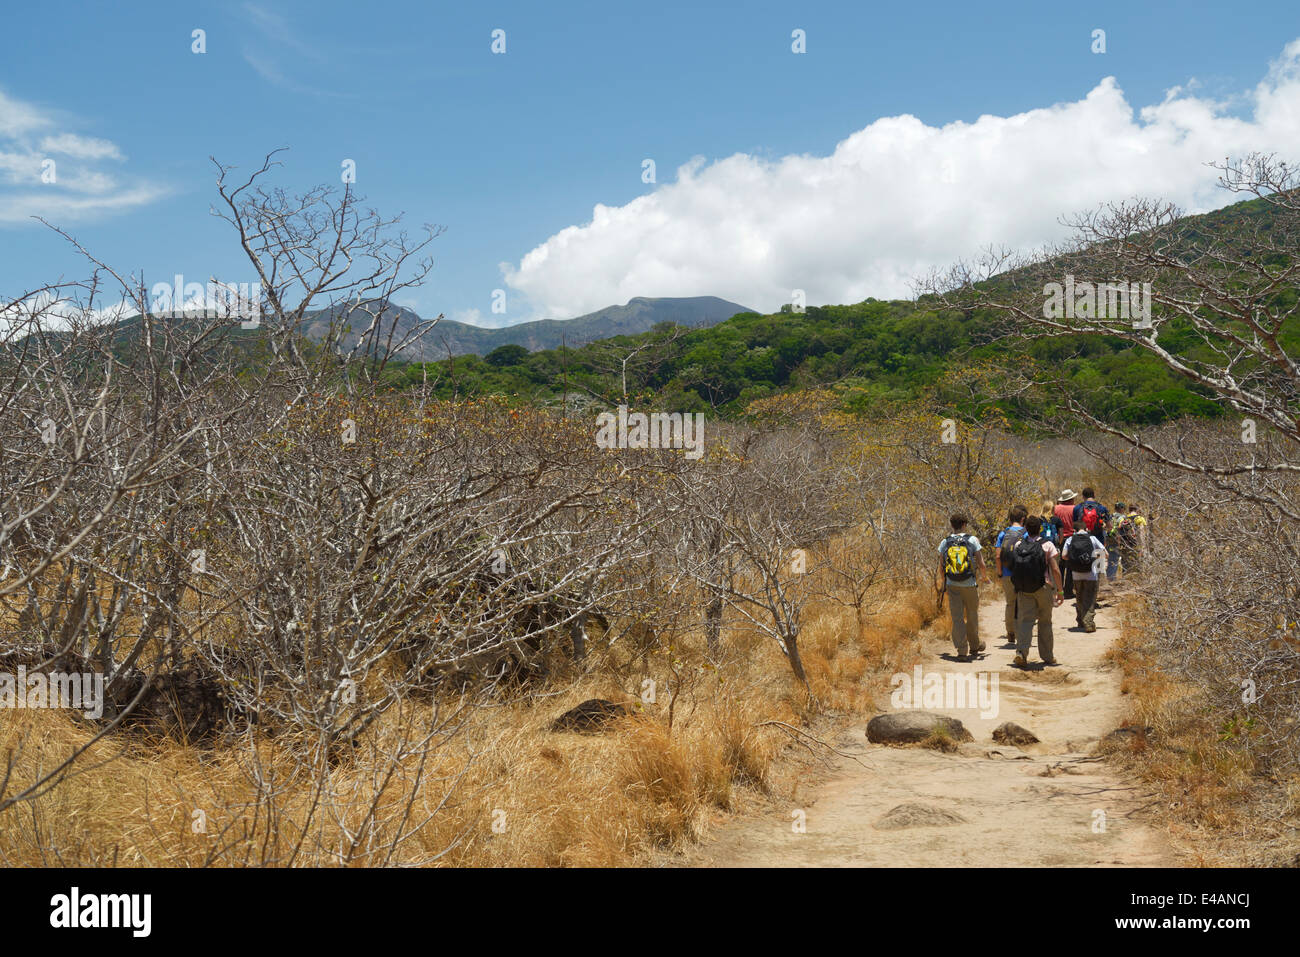 Ecotourism group hiking, Rincon de la Vieja National Park, Costa Rica Guanacaste Province - Stock Image